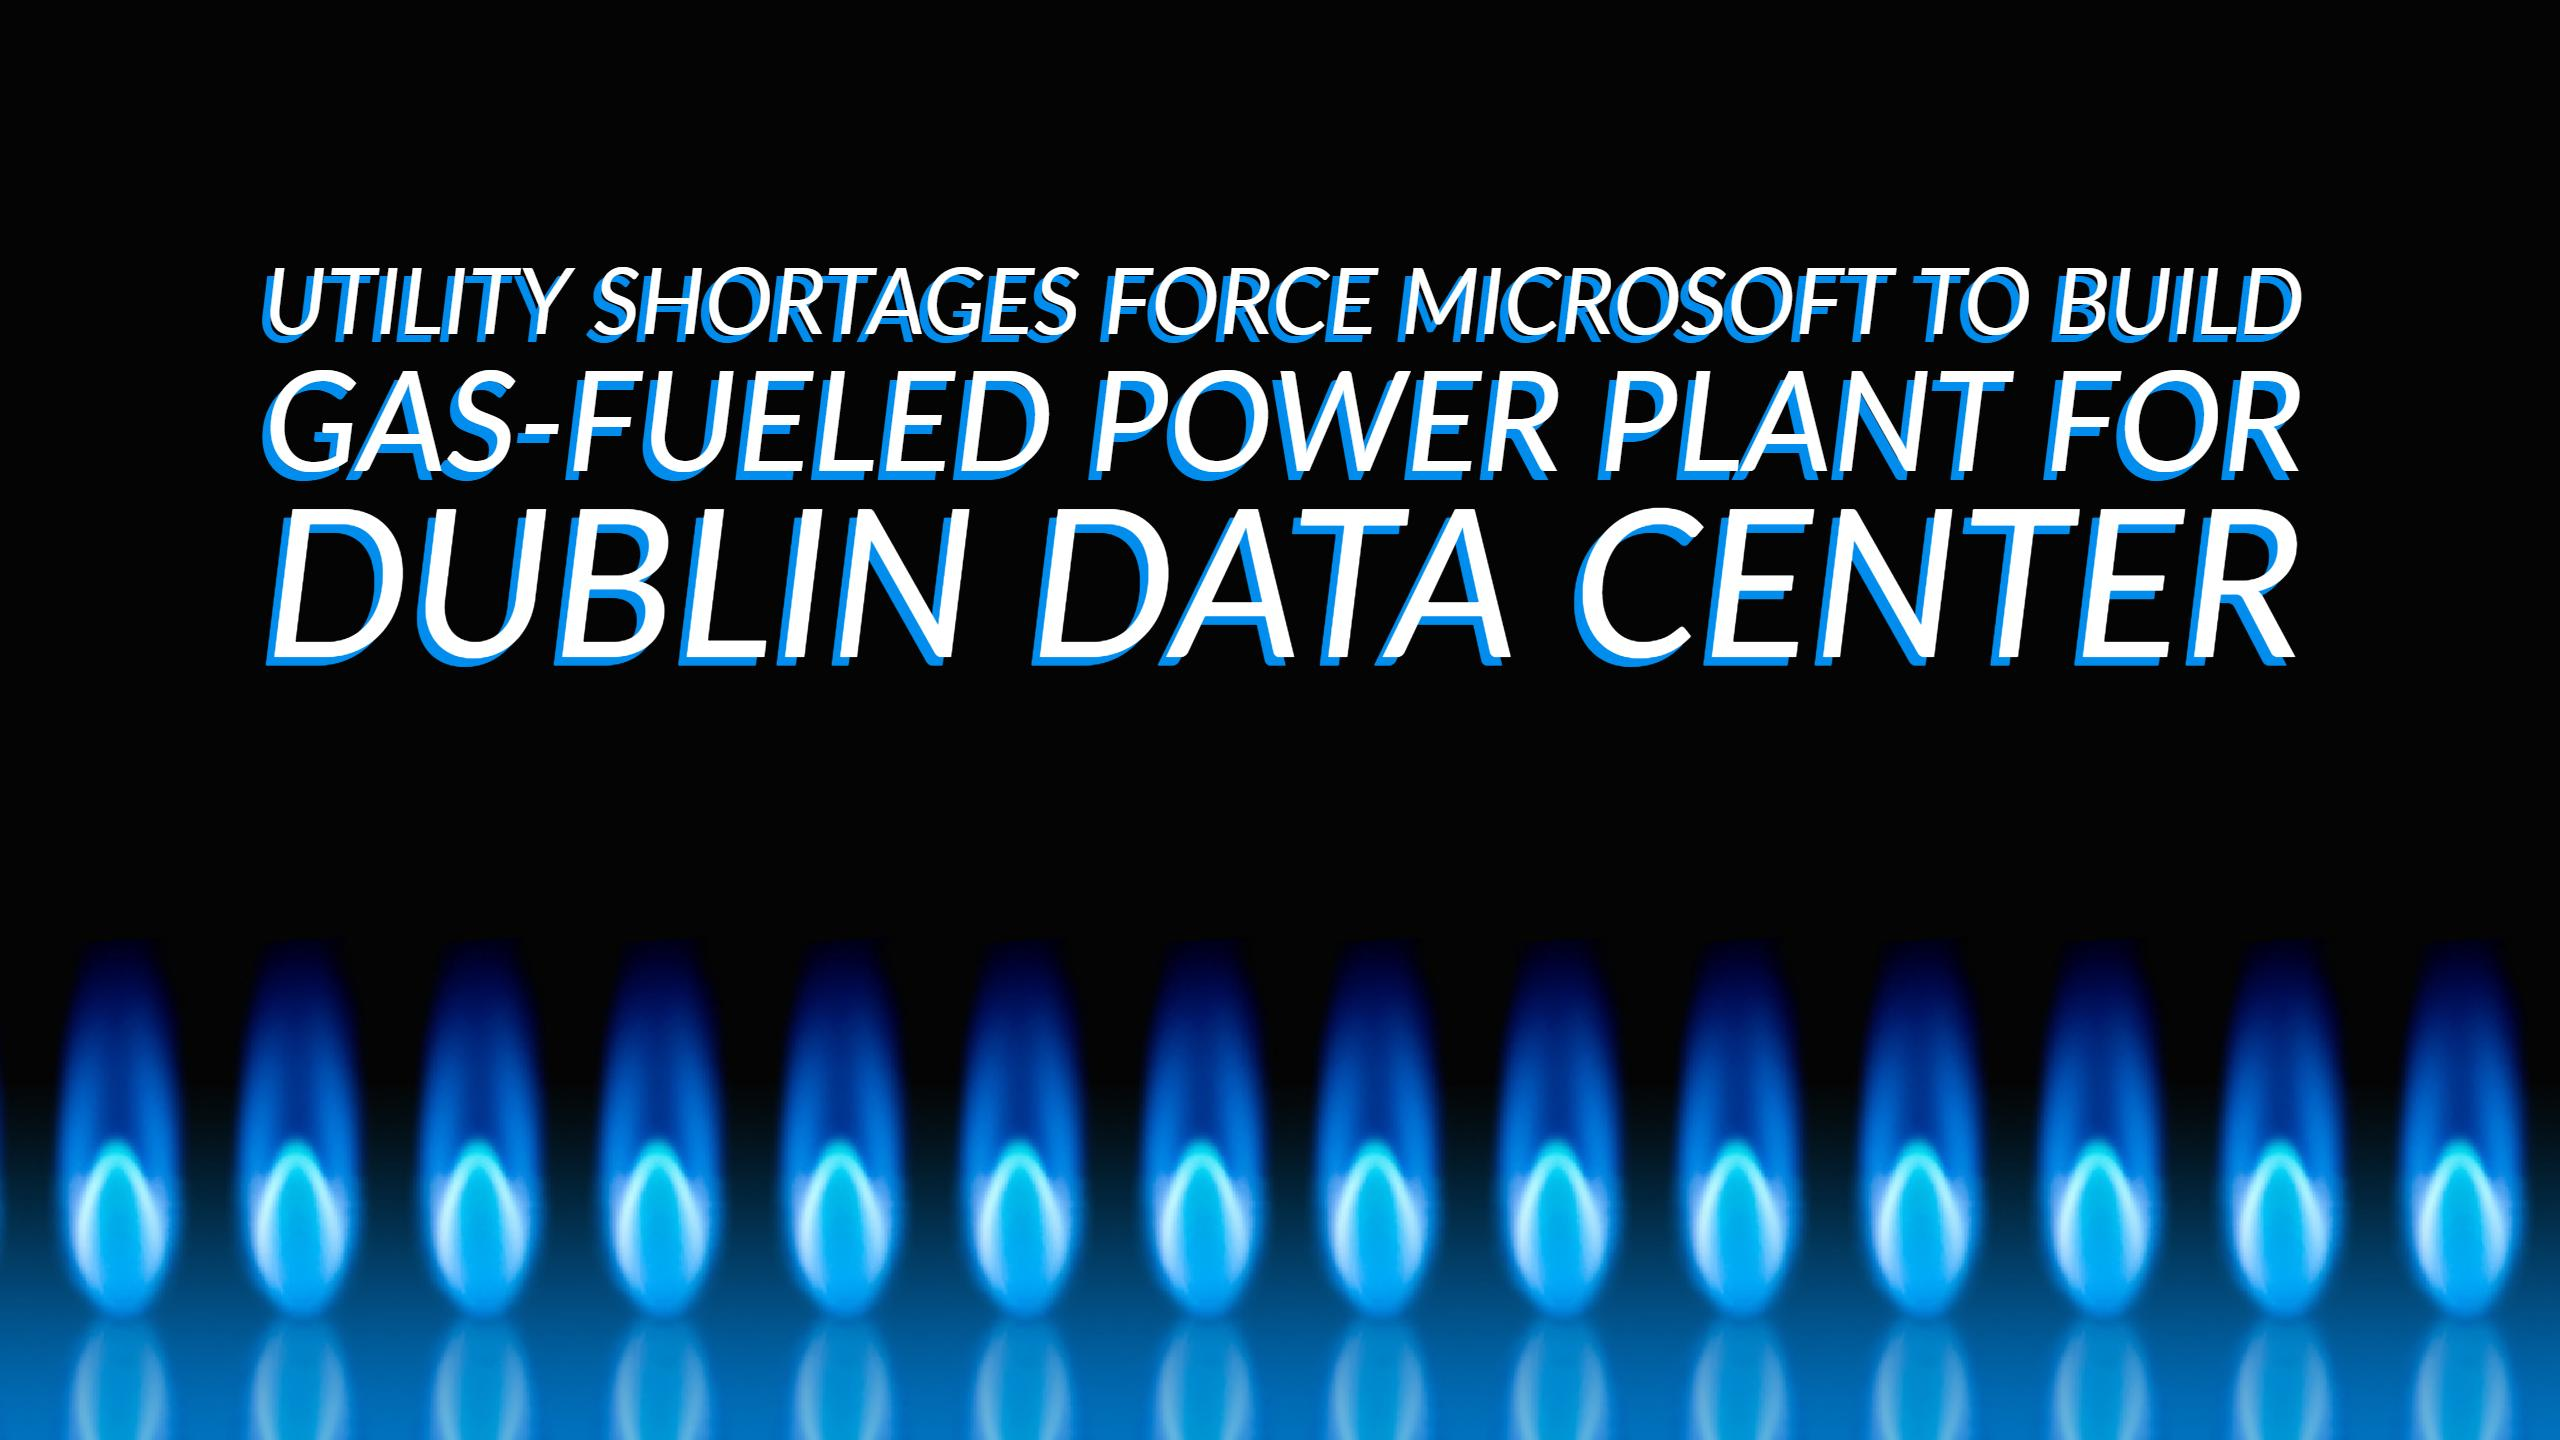 Utility Shortages Force Gas-Fueled Power Plant